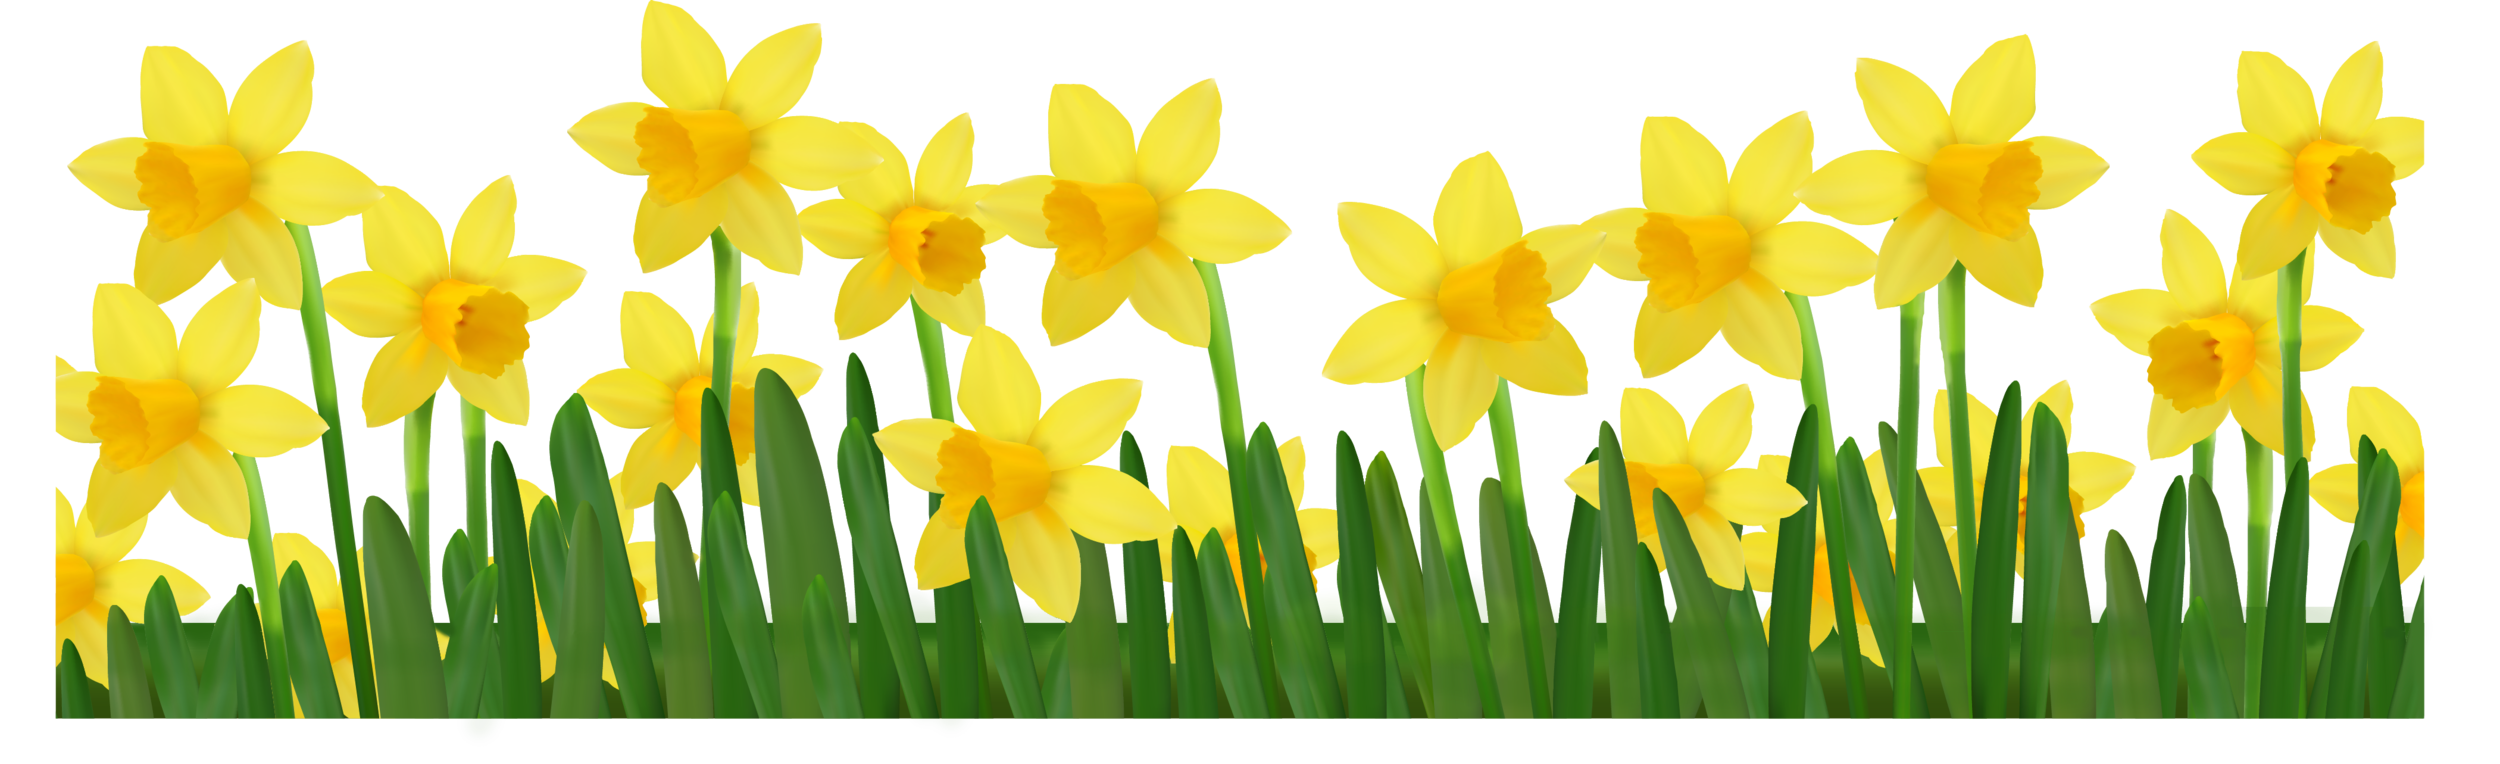 Grass_with_Daffodils_PNG.png